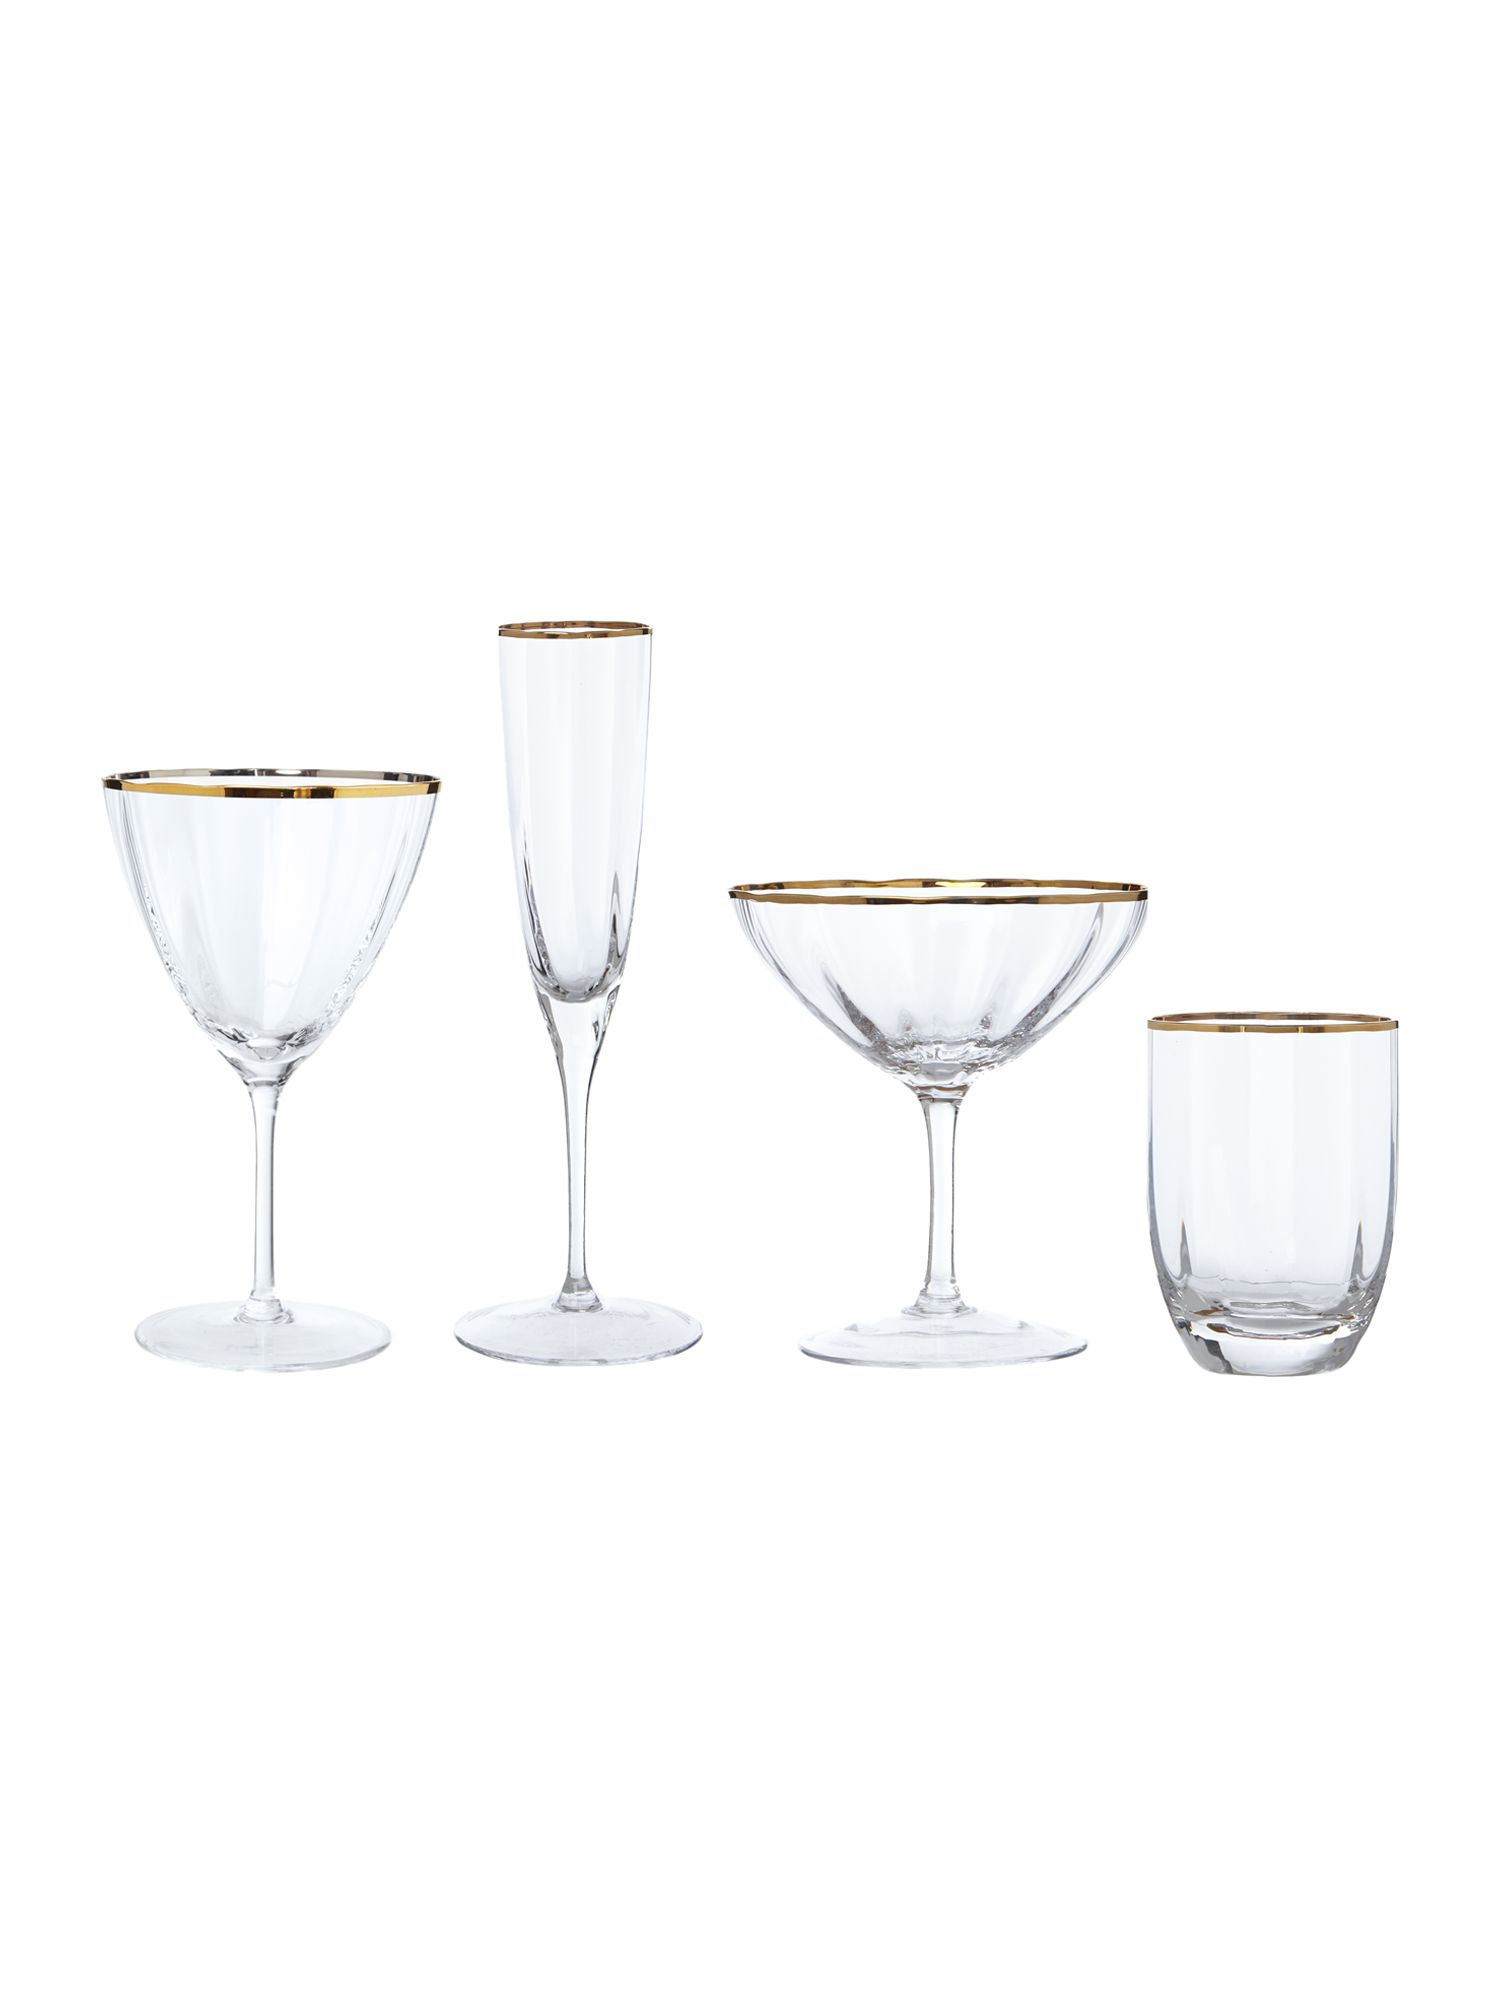 Gold rim optic glassware